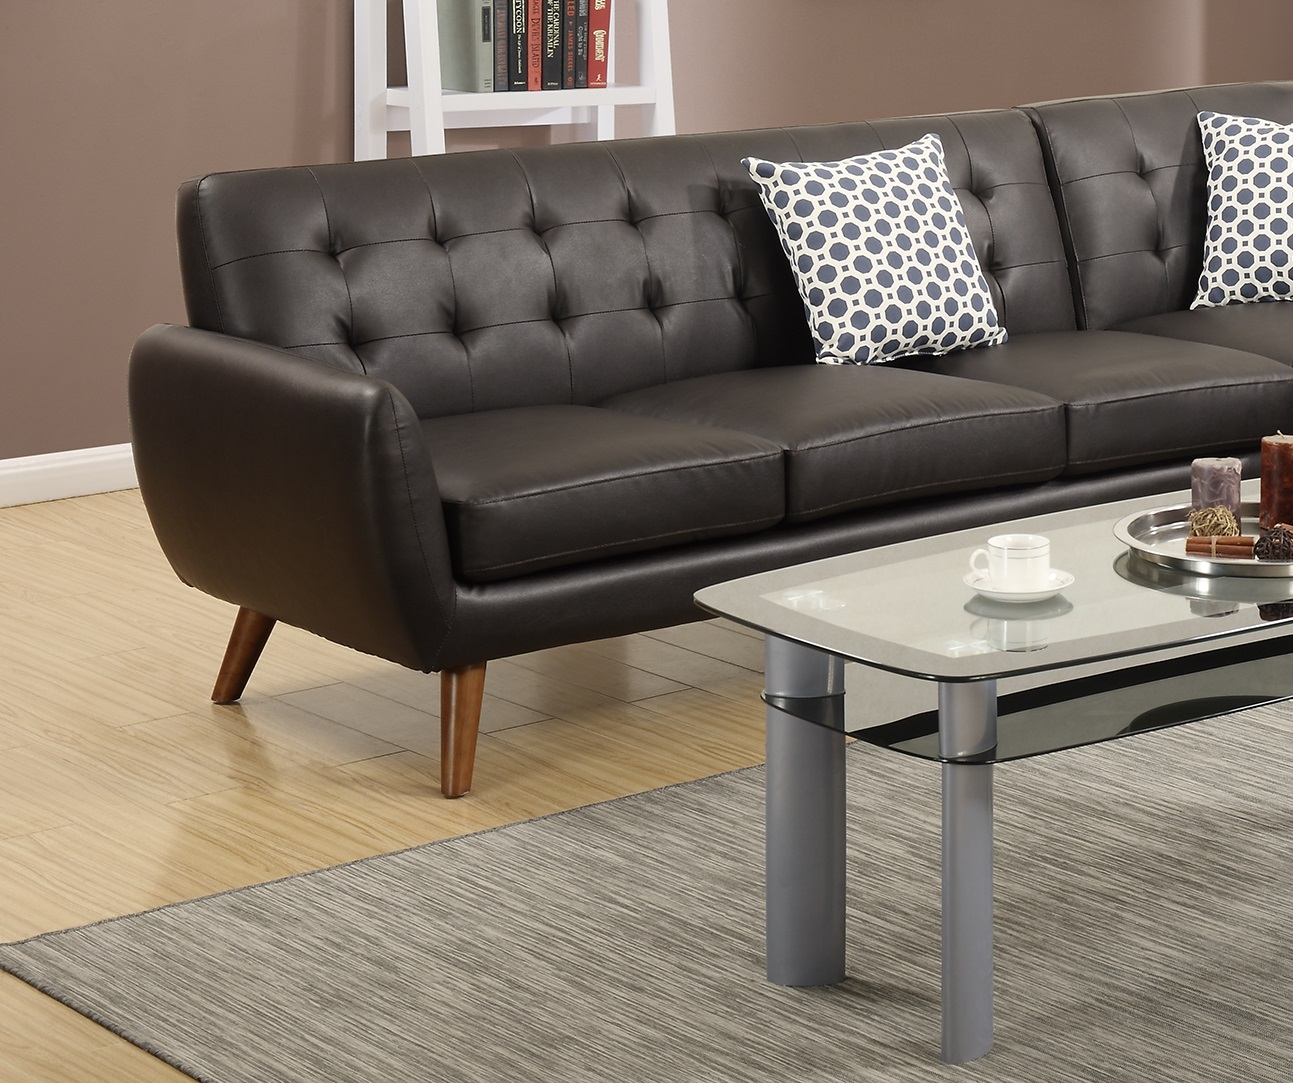 Sectional Sofa Loveseat Wedge Leather Couch Hot Sectionals